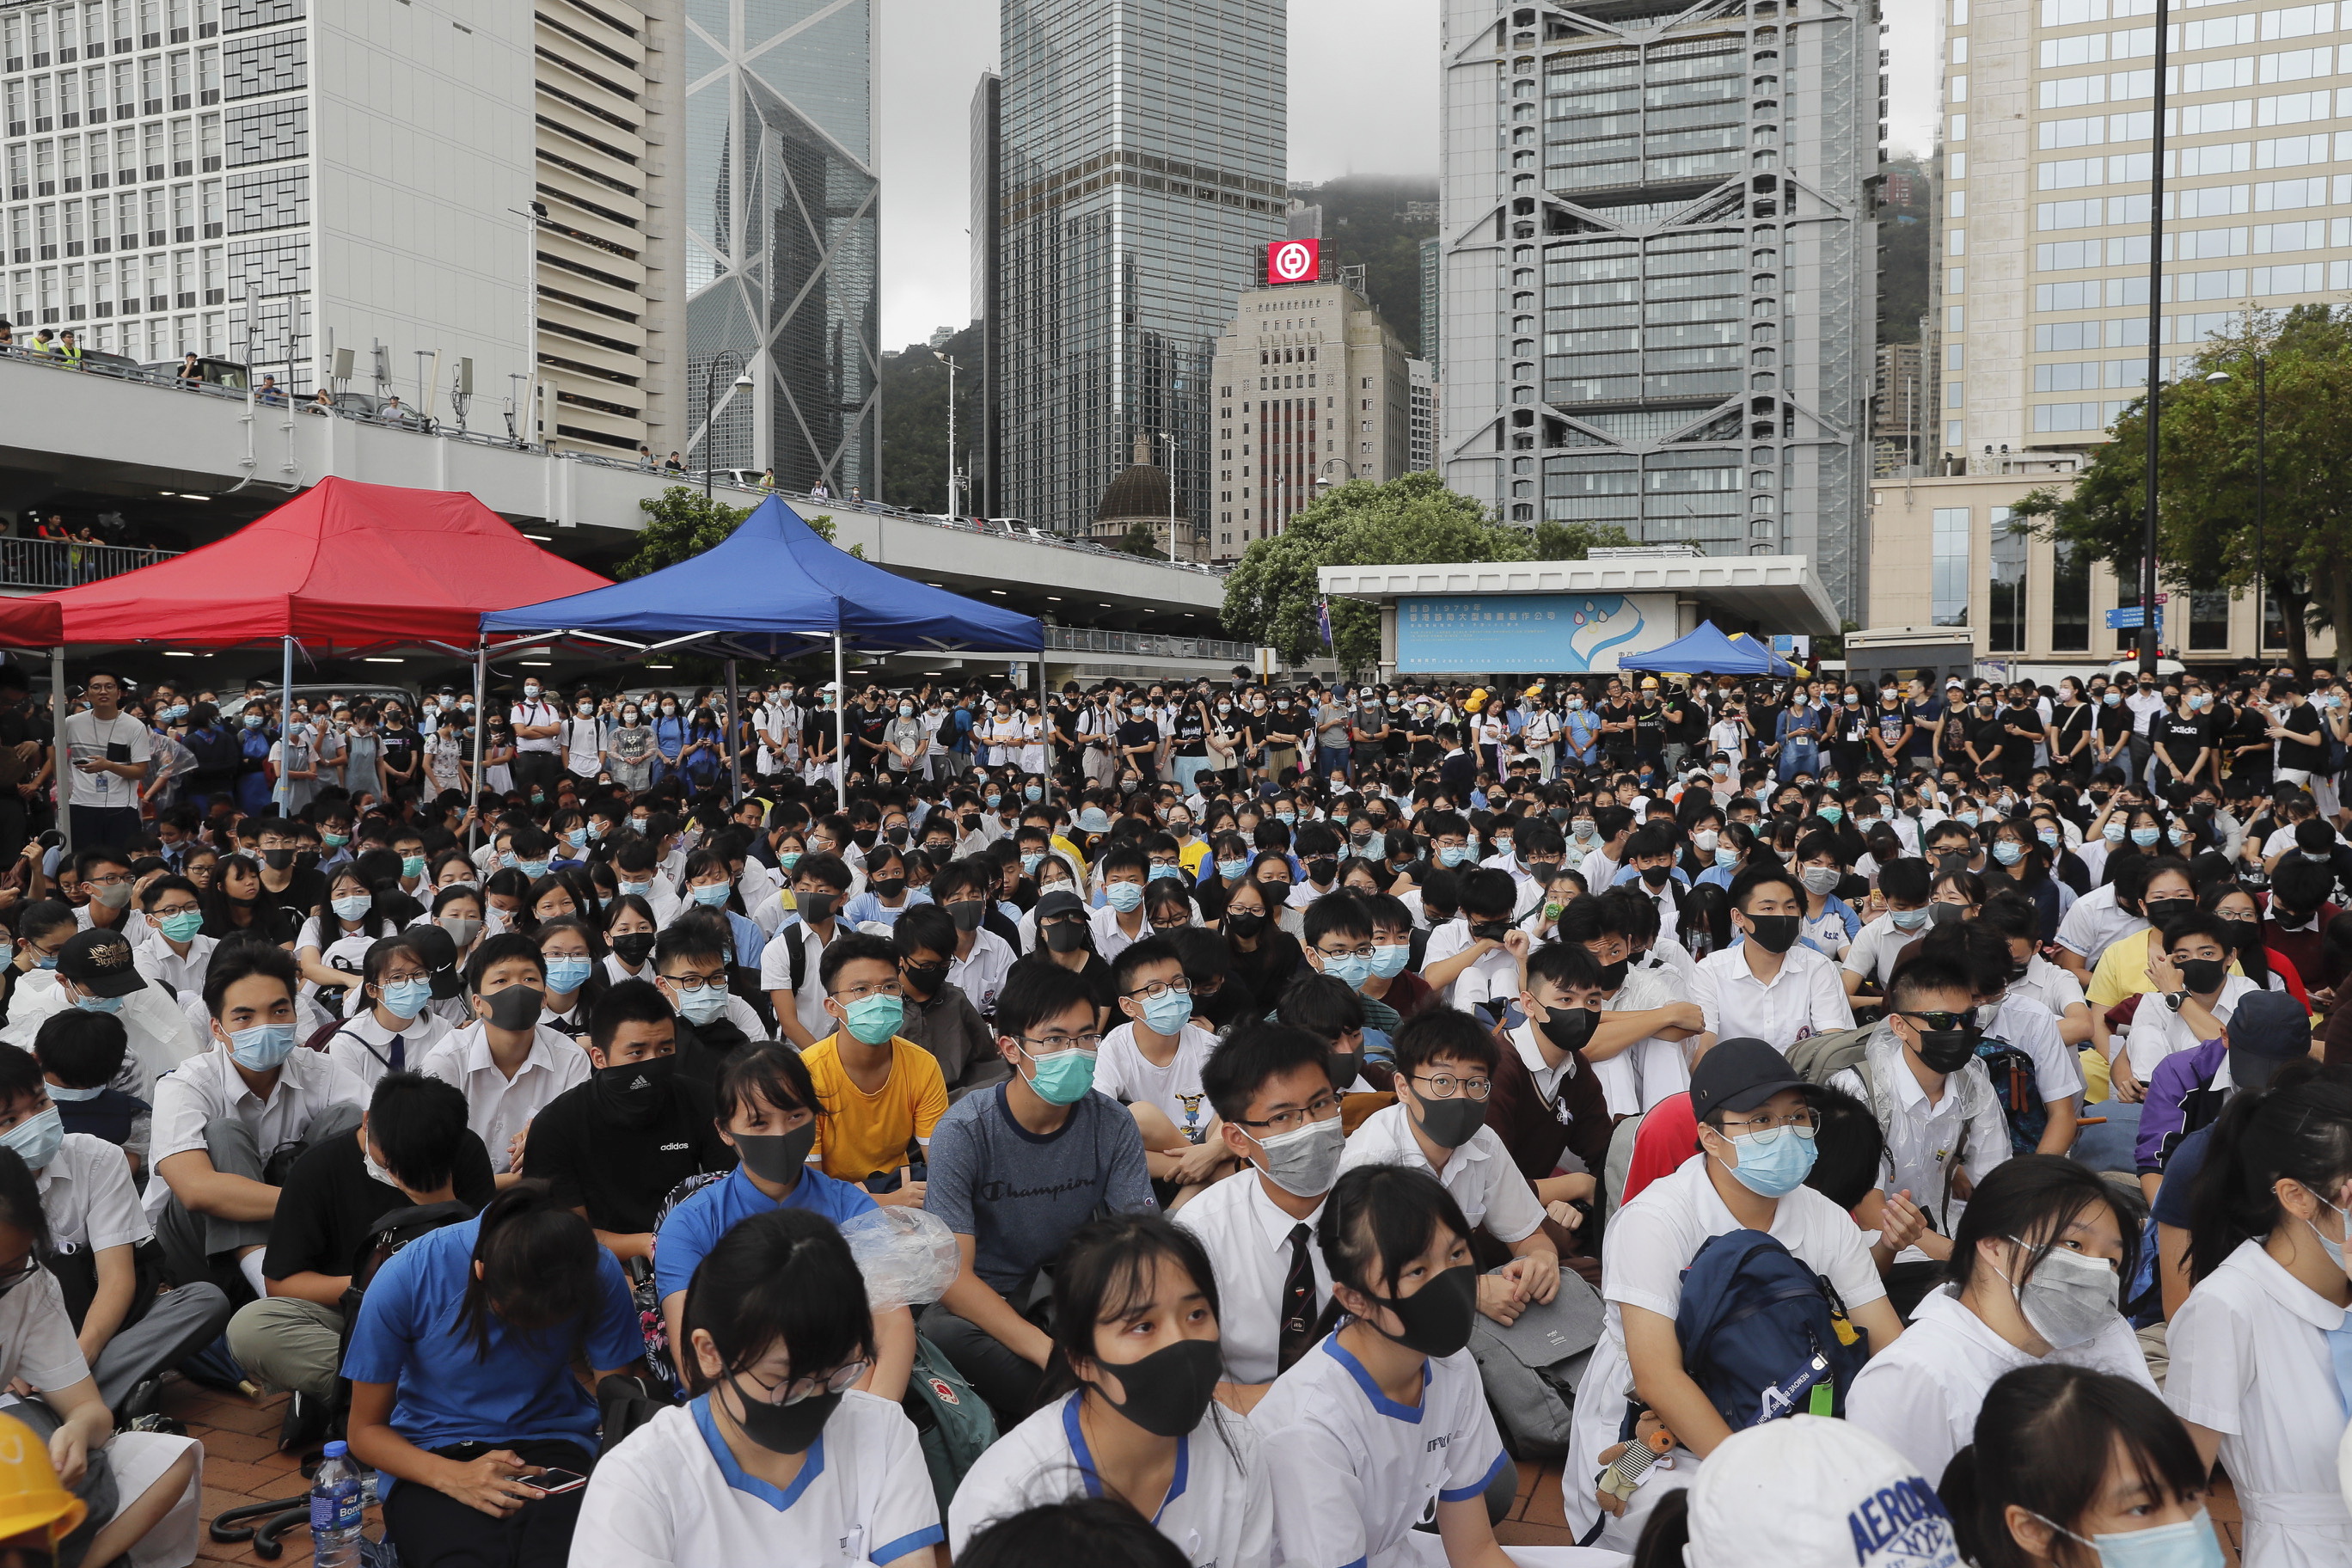 High school students sit on the ground during a protest in Admiralty in Hong Kong, on September 2, 2019.